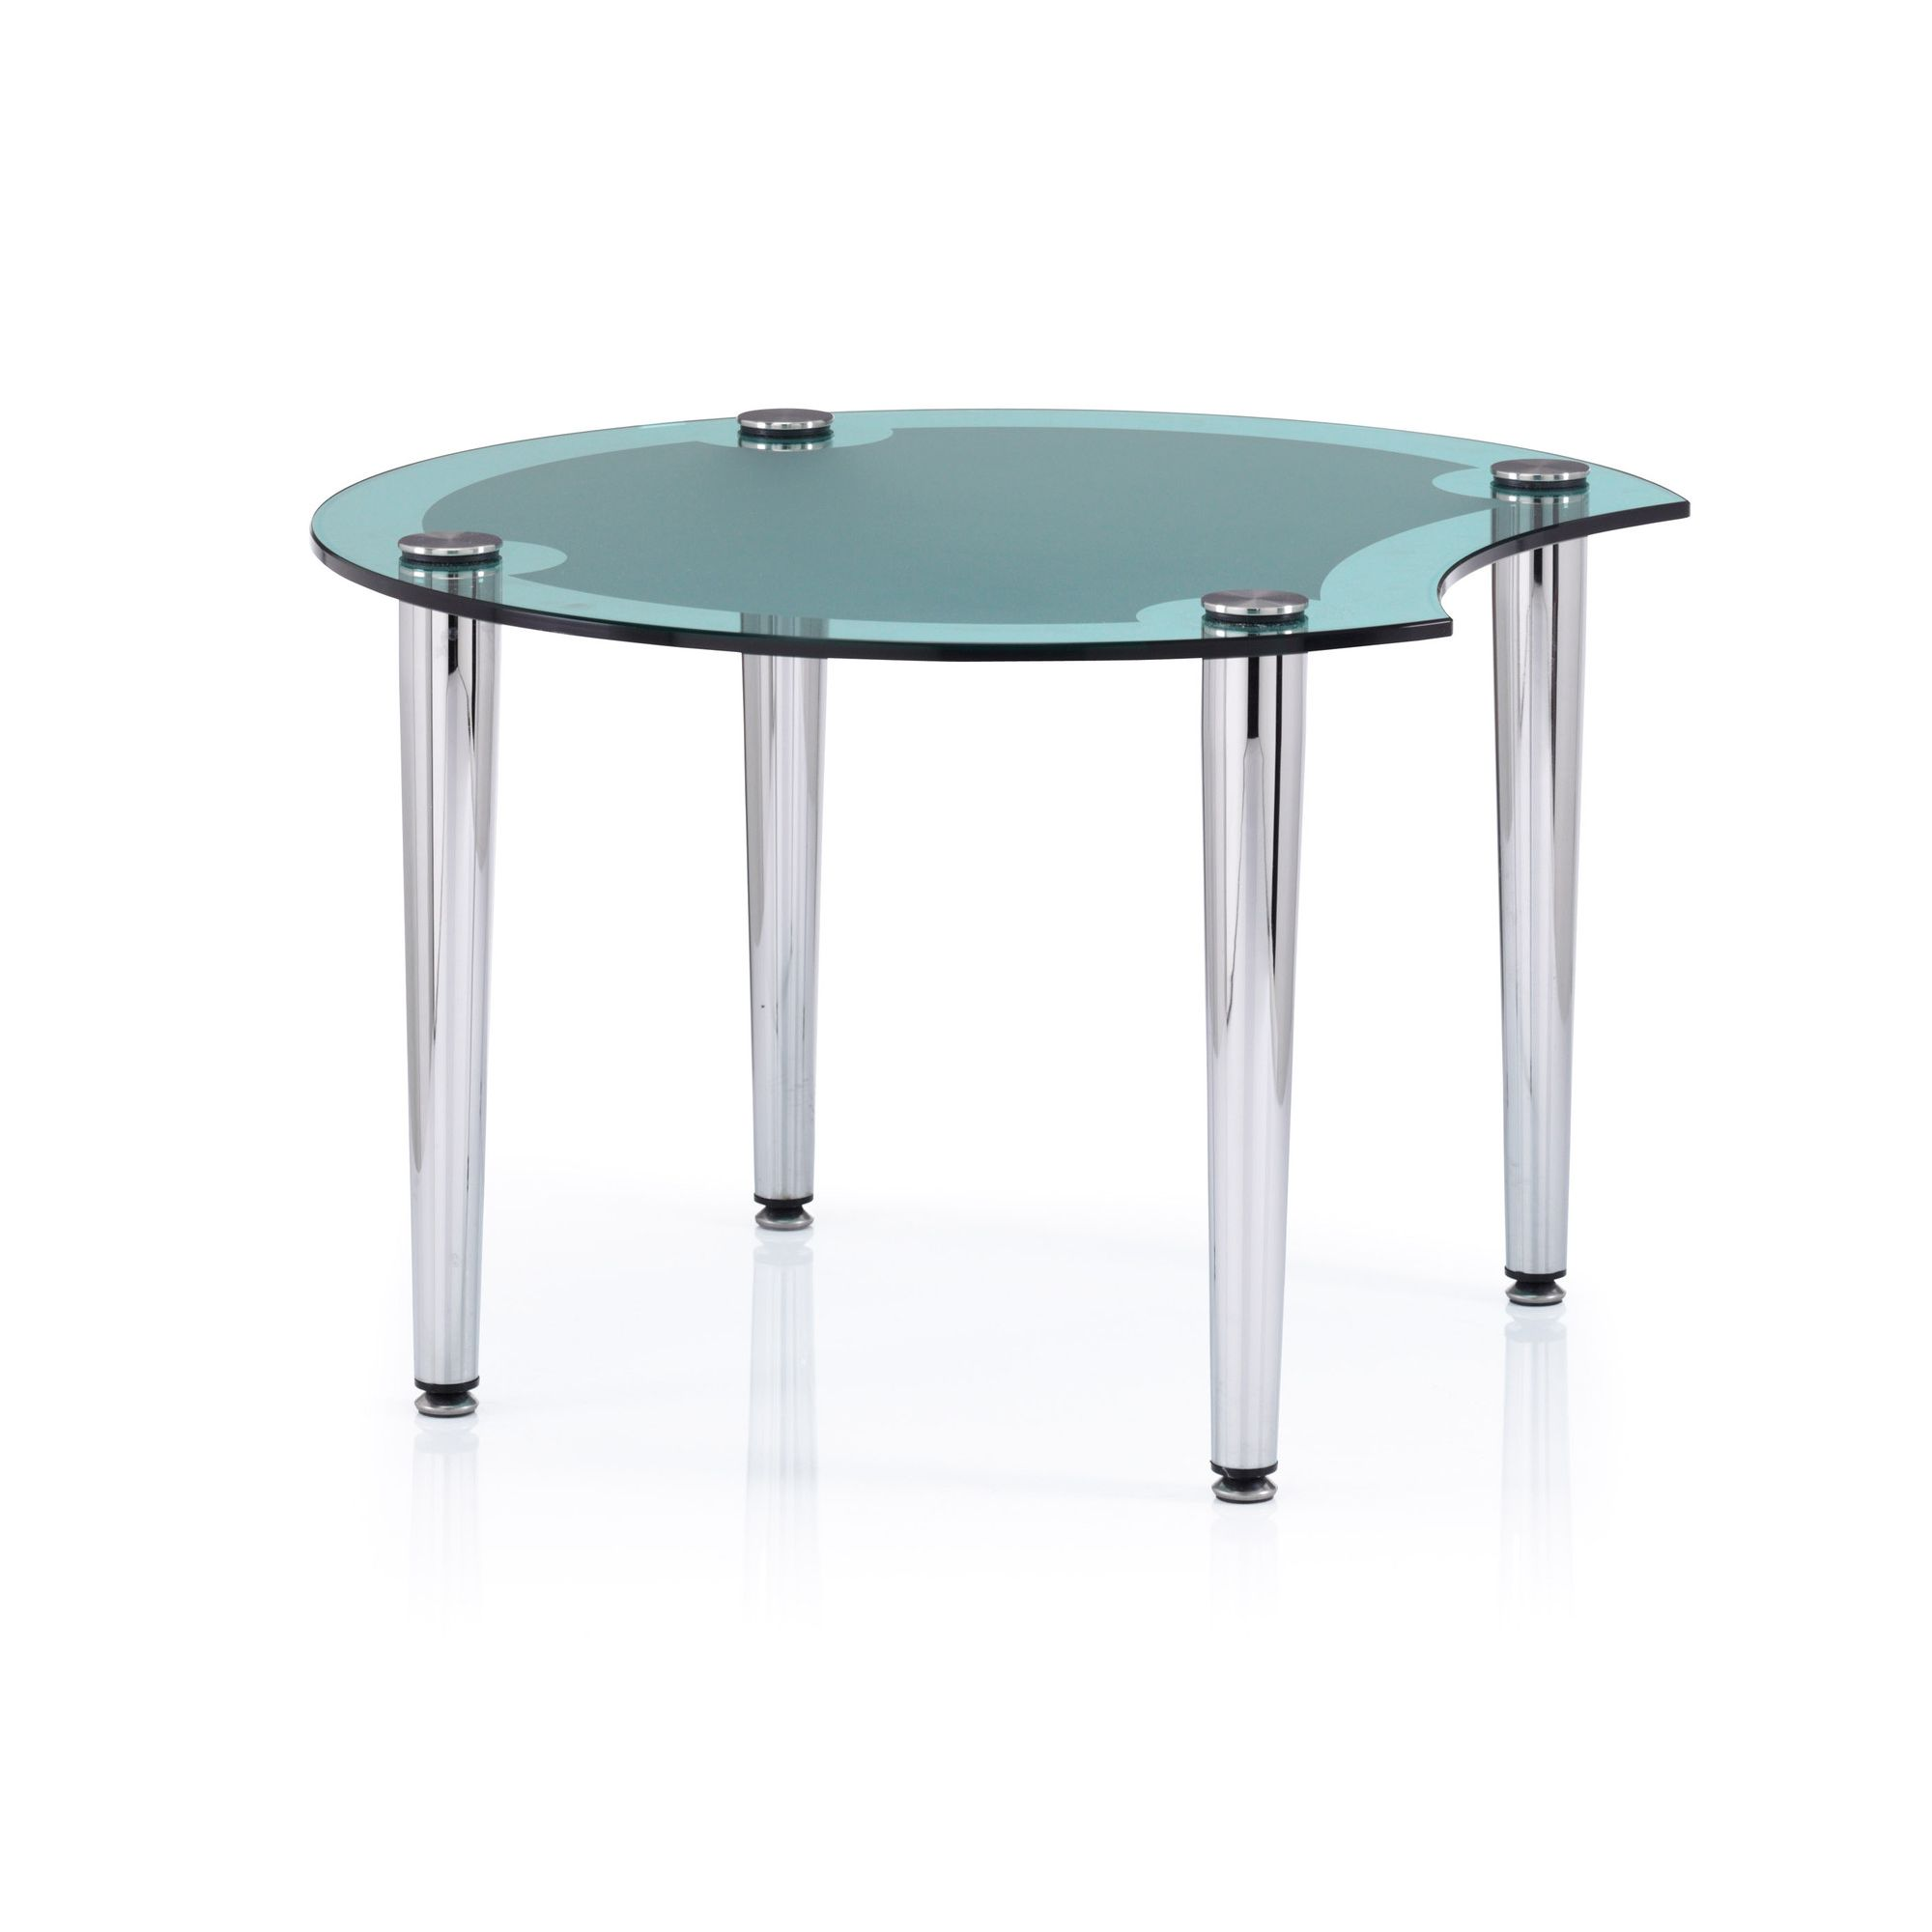 Ocee Design Casino End Table - Green at Tesco Direct